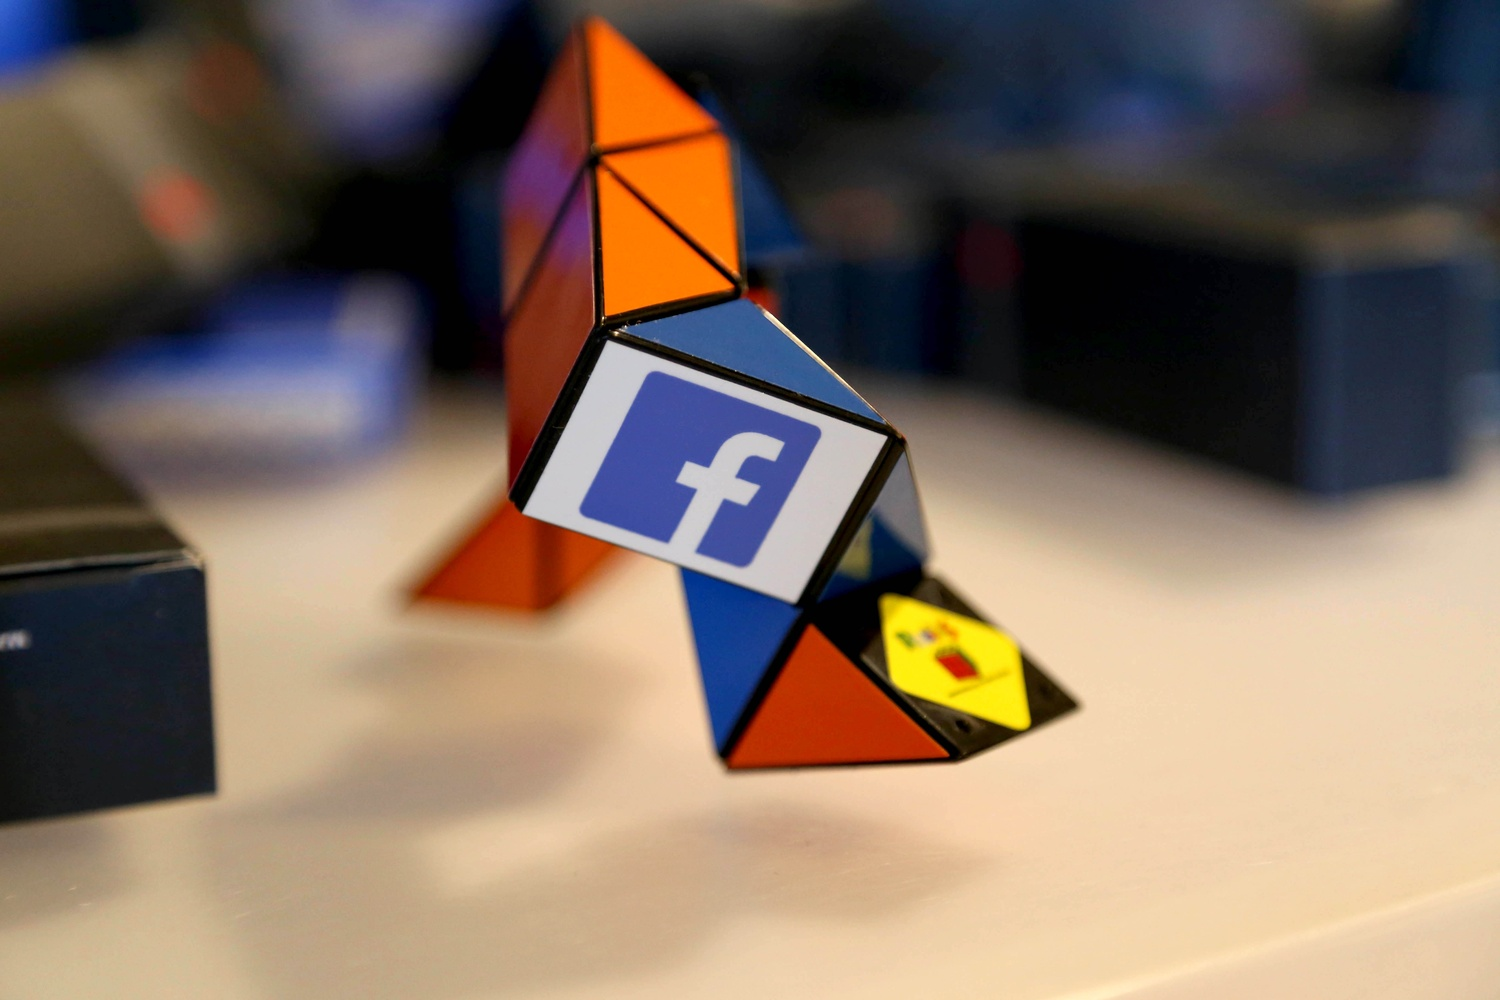 A rubik's snake rests on a table at CS50 Puzzle Day on September 6, 2014. The Facebook-sponsored event featured Facebook and CS50 paraphenalia and giveaways.